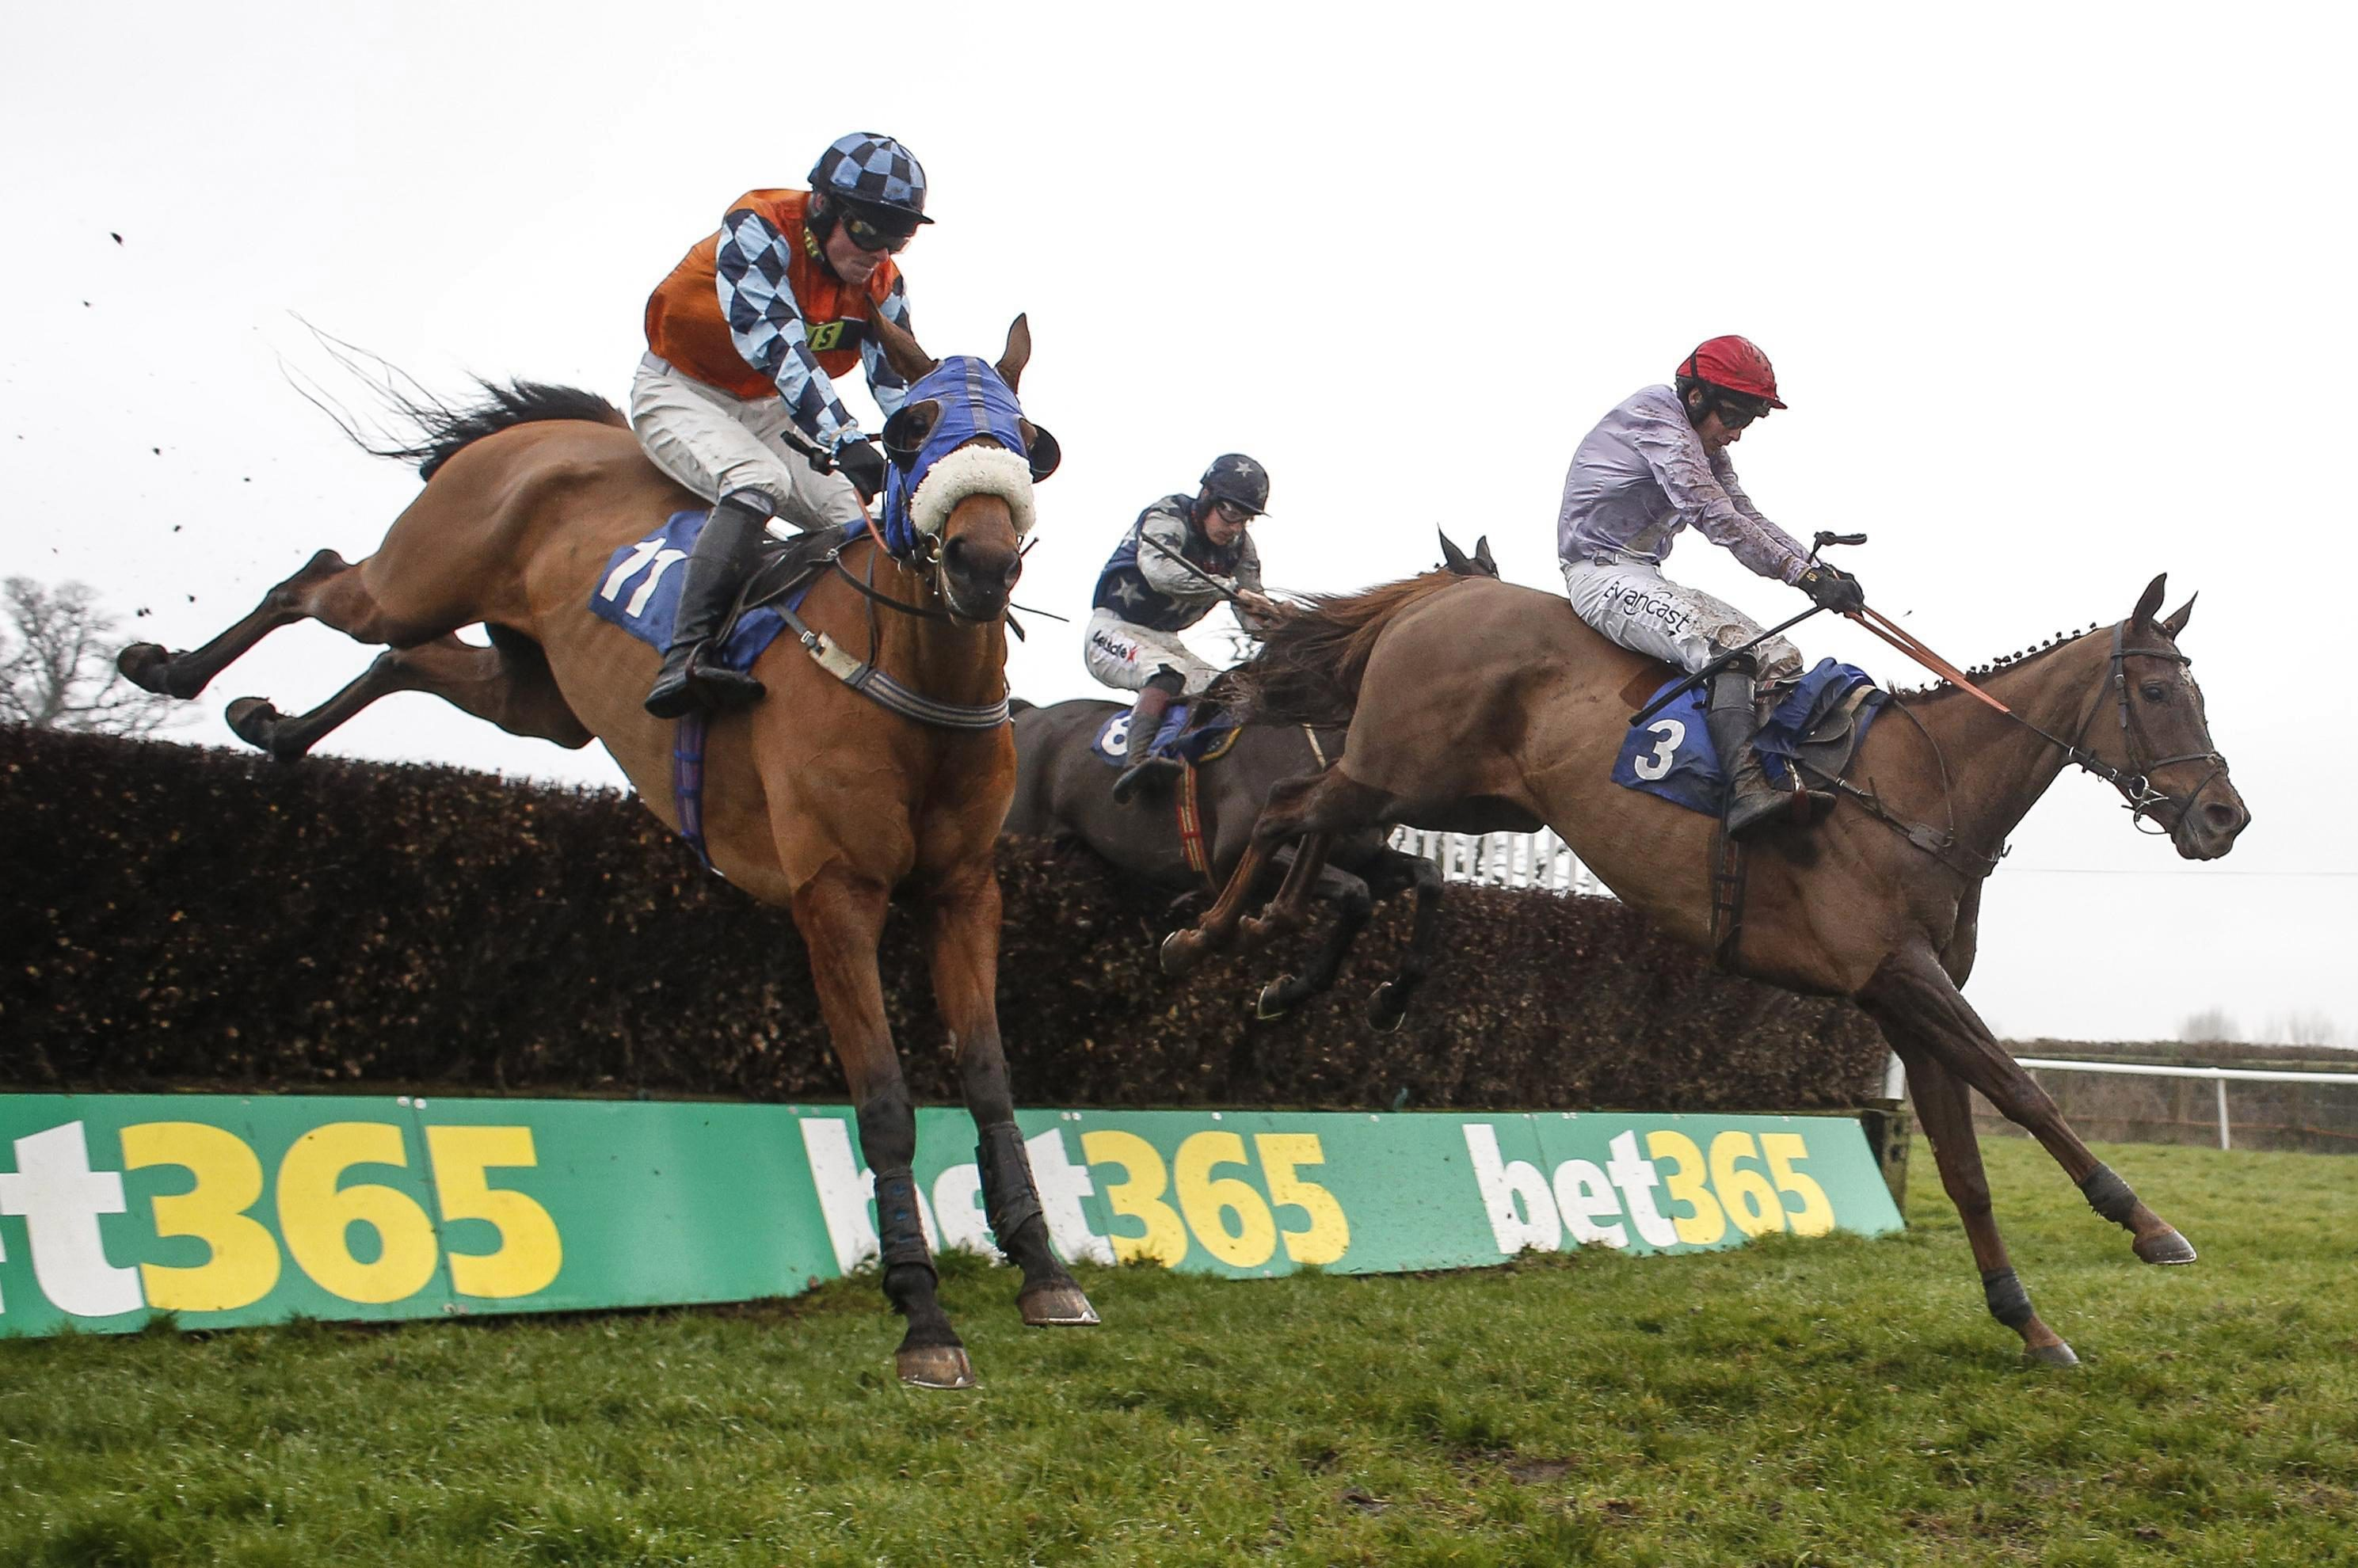 Horse racing tips: Kempton, Lingfield, Wolverhampton and Southwell – Templegate's betting preview for the racing this Monday, March 5